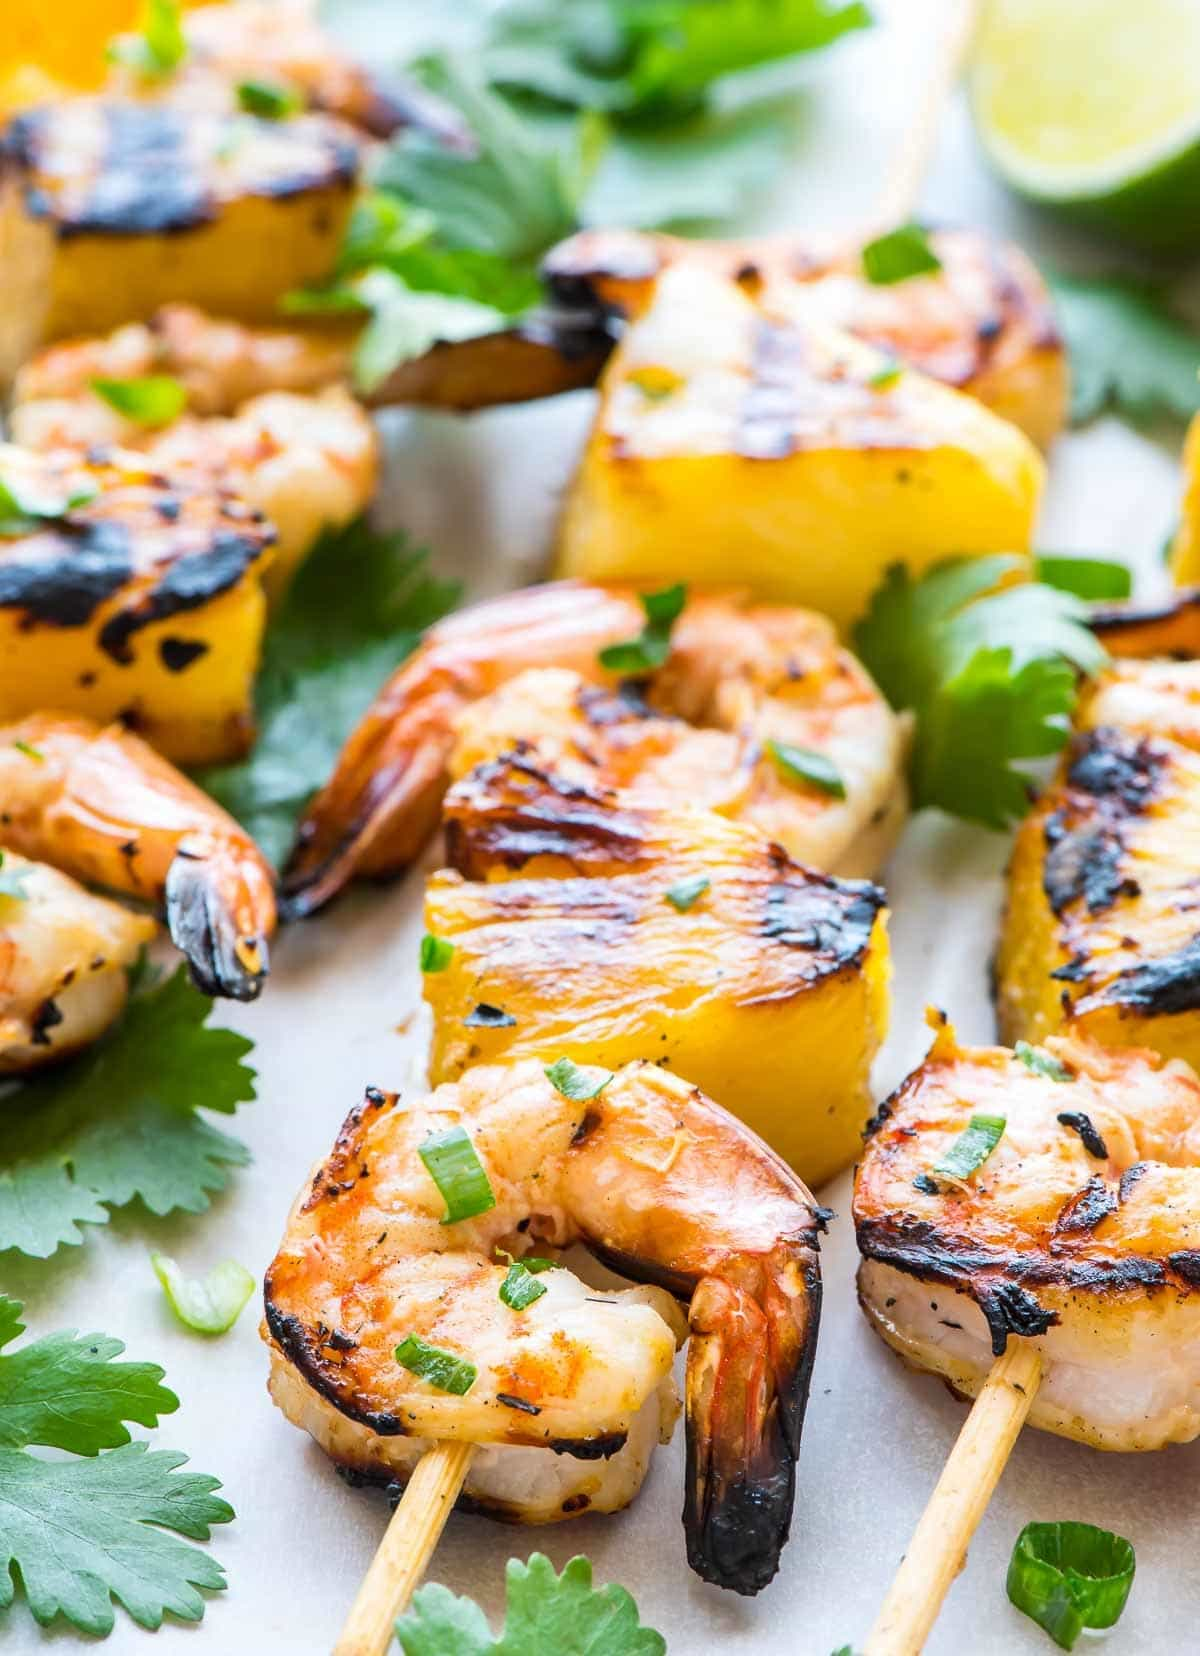 Coconut Pineapple Shrimp Skewers. The easiest, most flavorful way to cook shrimp! Juicy grilled shrimp kabobs with an irresistible citrus coconut marinade. Perfect for parties or a light summer meal. @wellplated